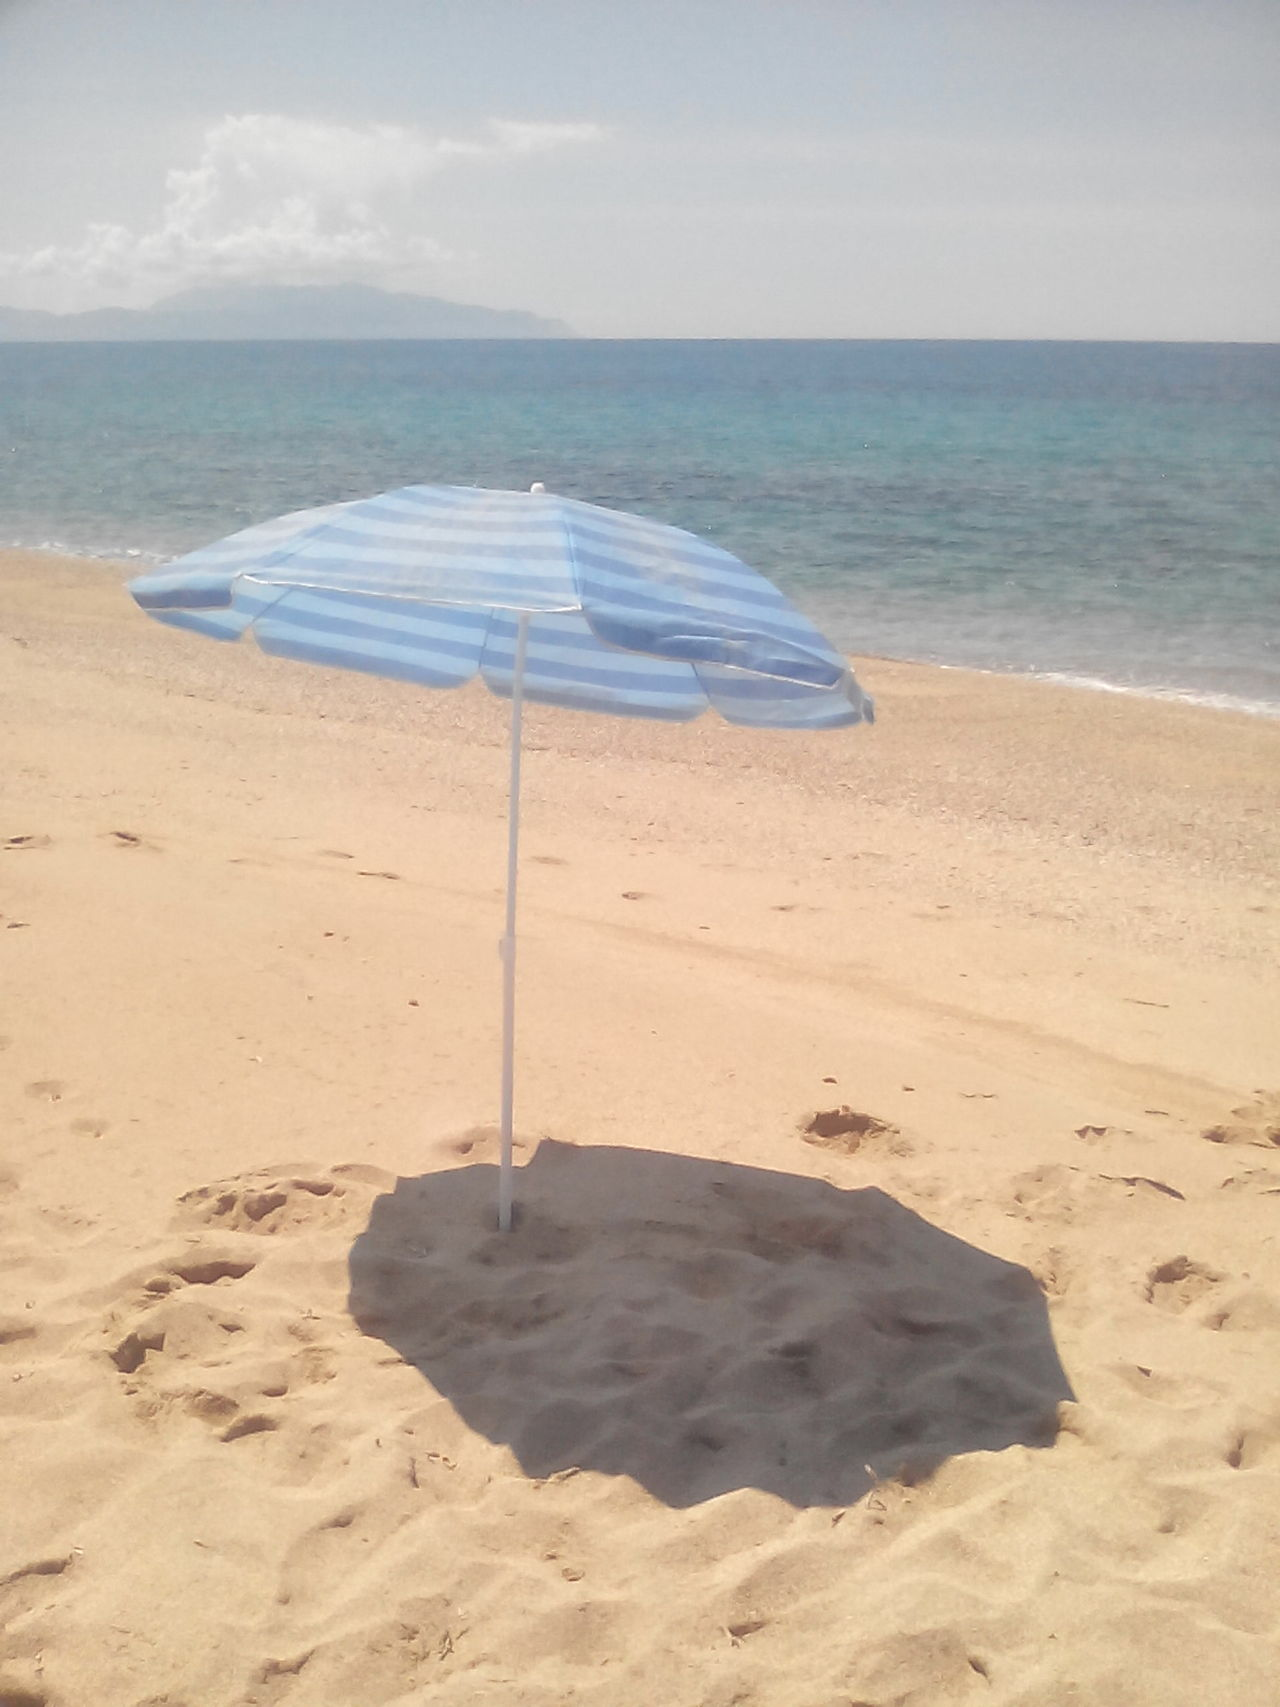 SunshineGetting A Tan Relaxing Unbrella Sand Enjoying The Sun Sea Being A Beach Bum The Essence Of Summer